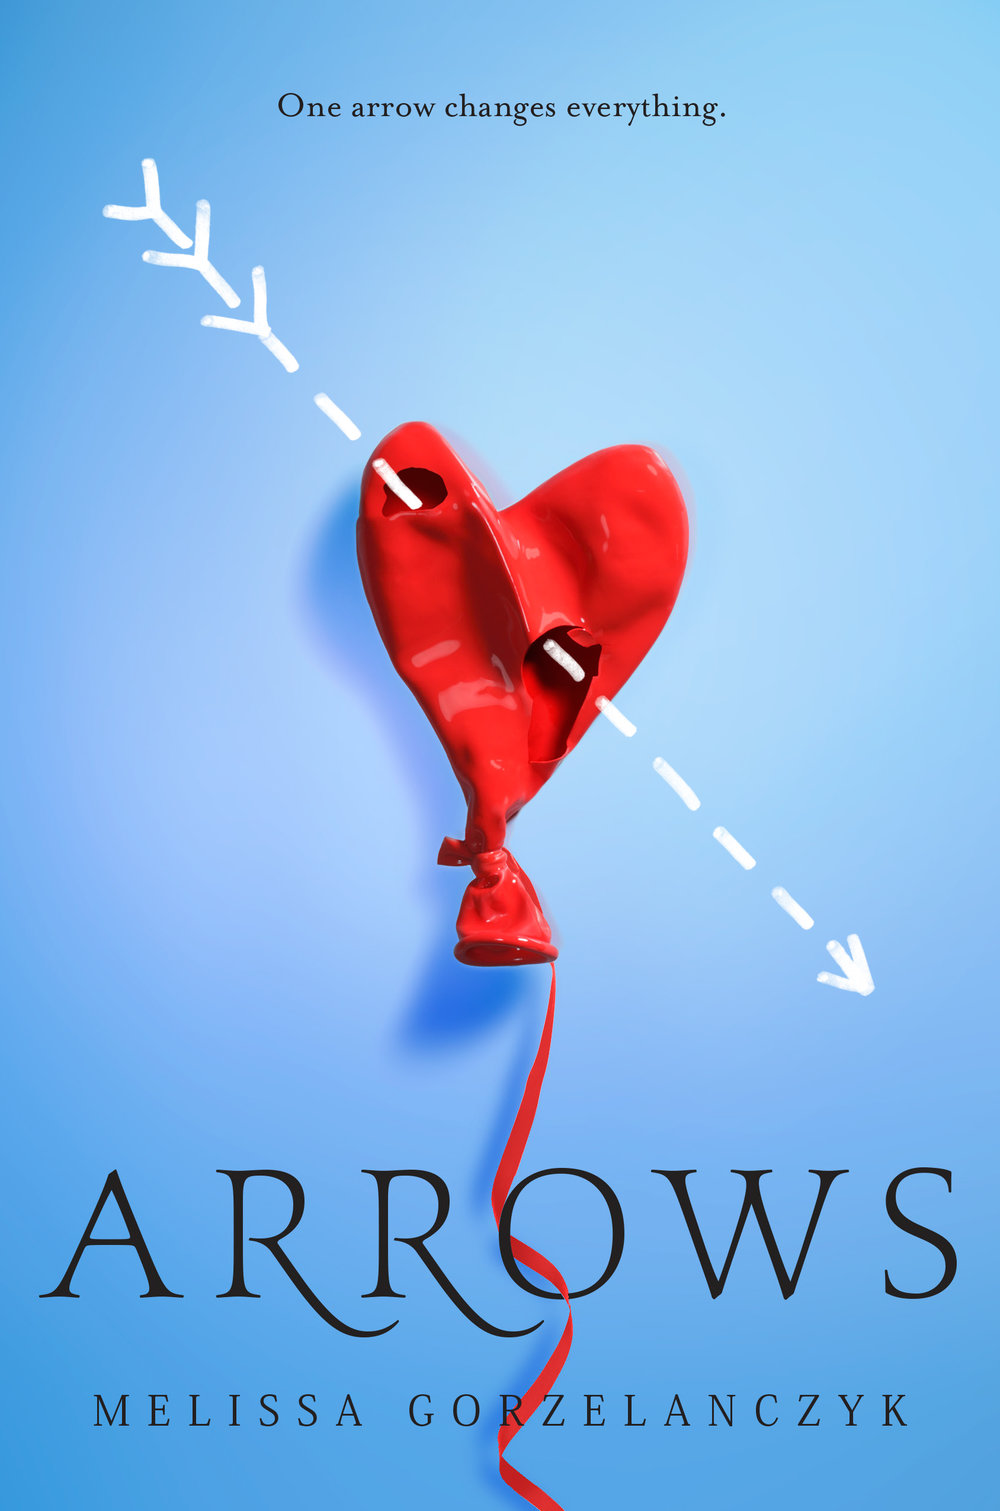 Arrows FINAL2 copy copy.jpg